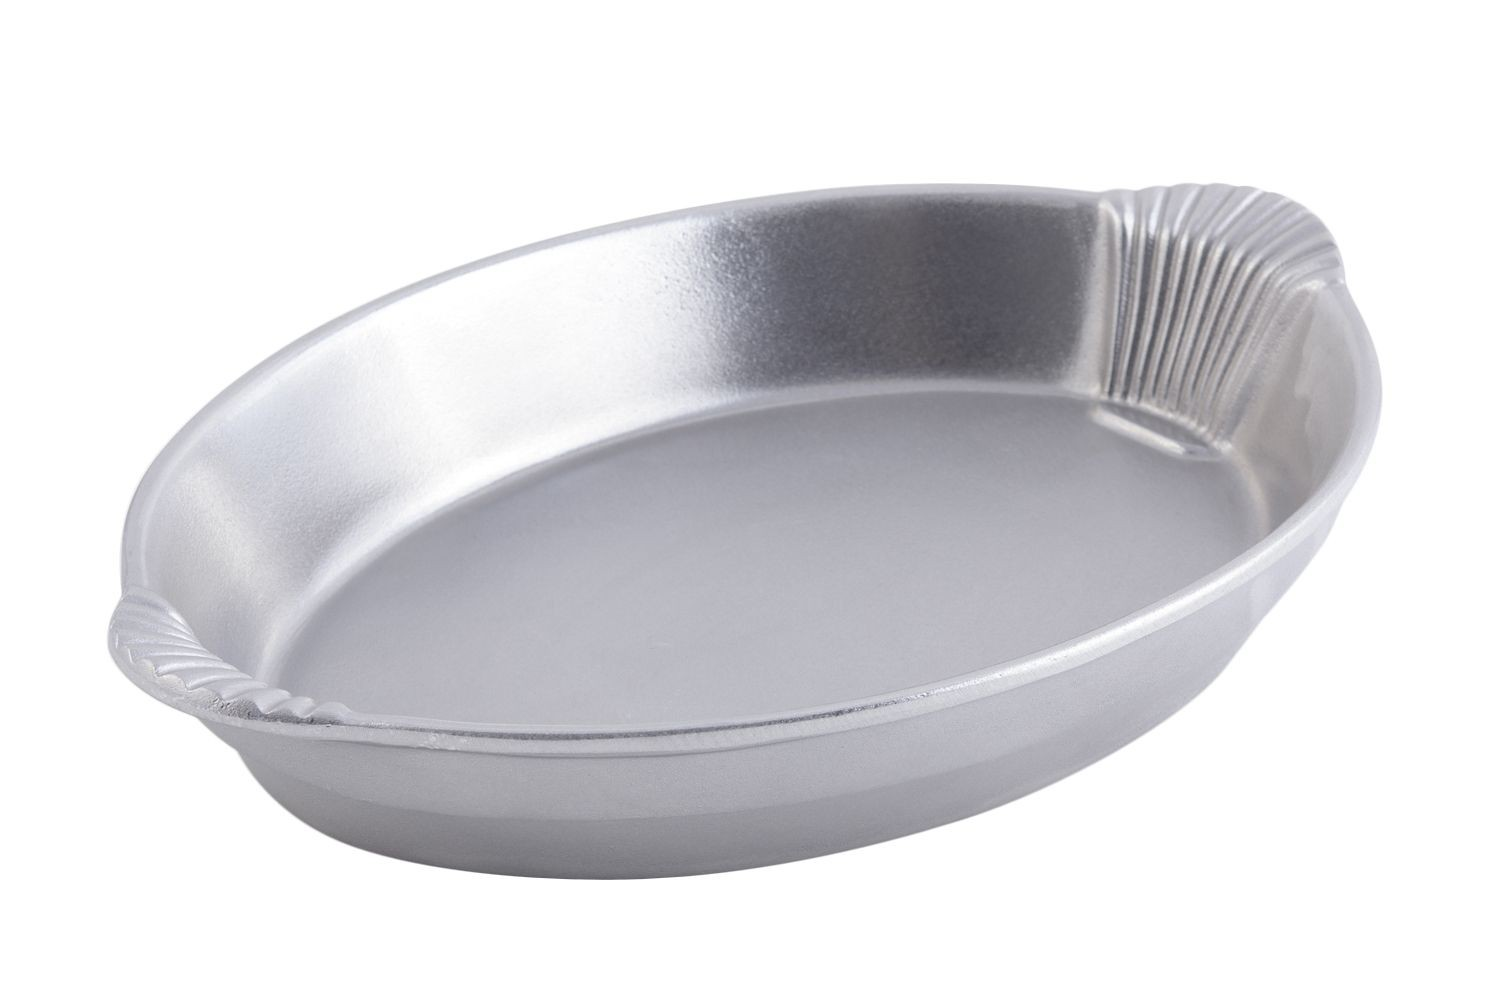 "Bon Chef 2078P Oval Casserole Dish with Shell Handles, Pewter Glo 12"" x 17"" x 2 1/2"""